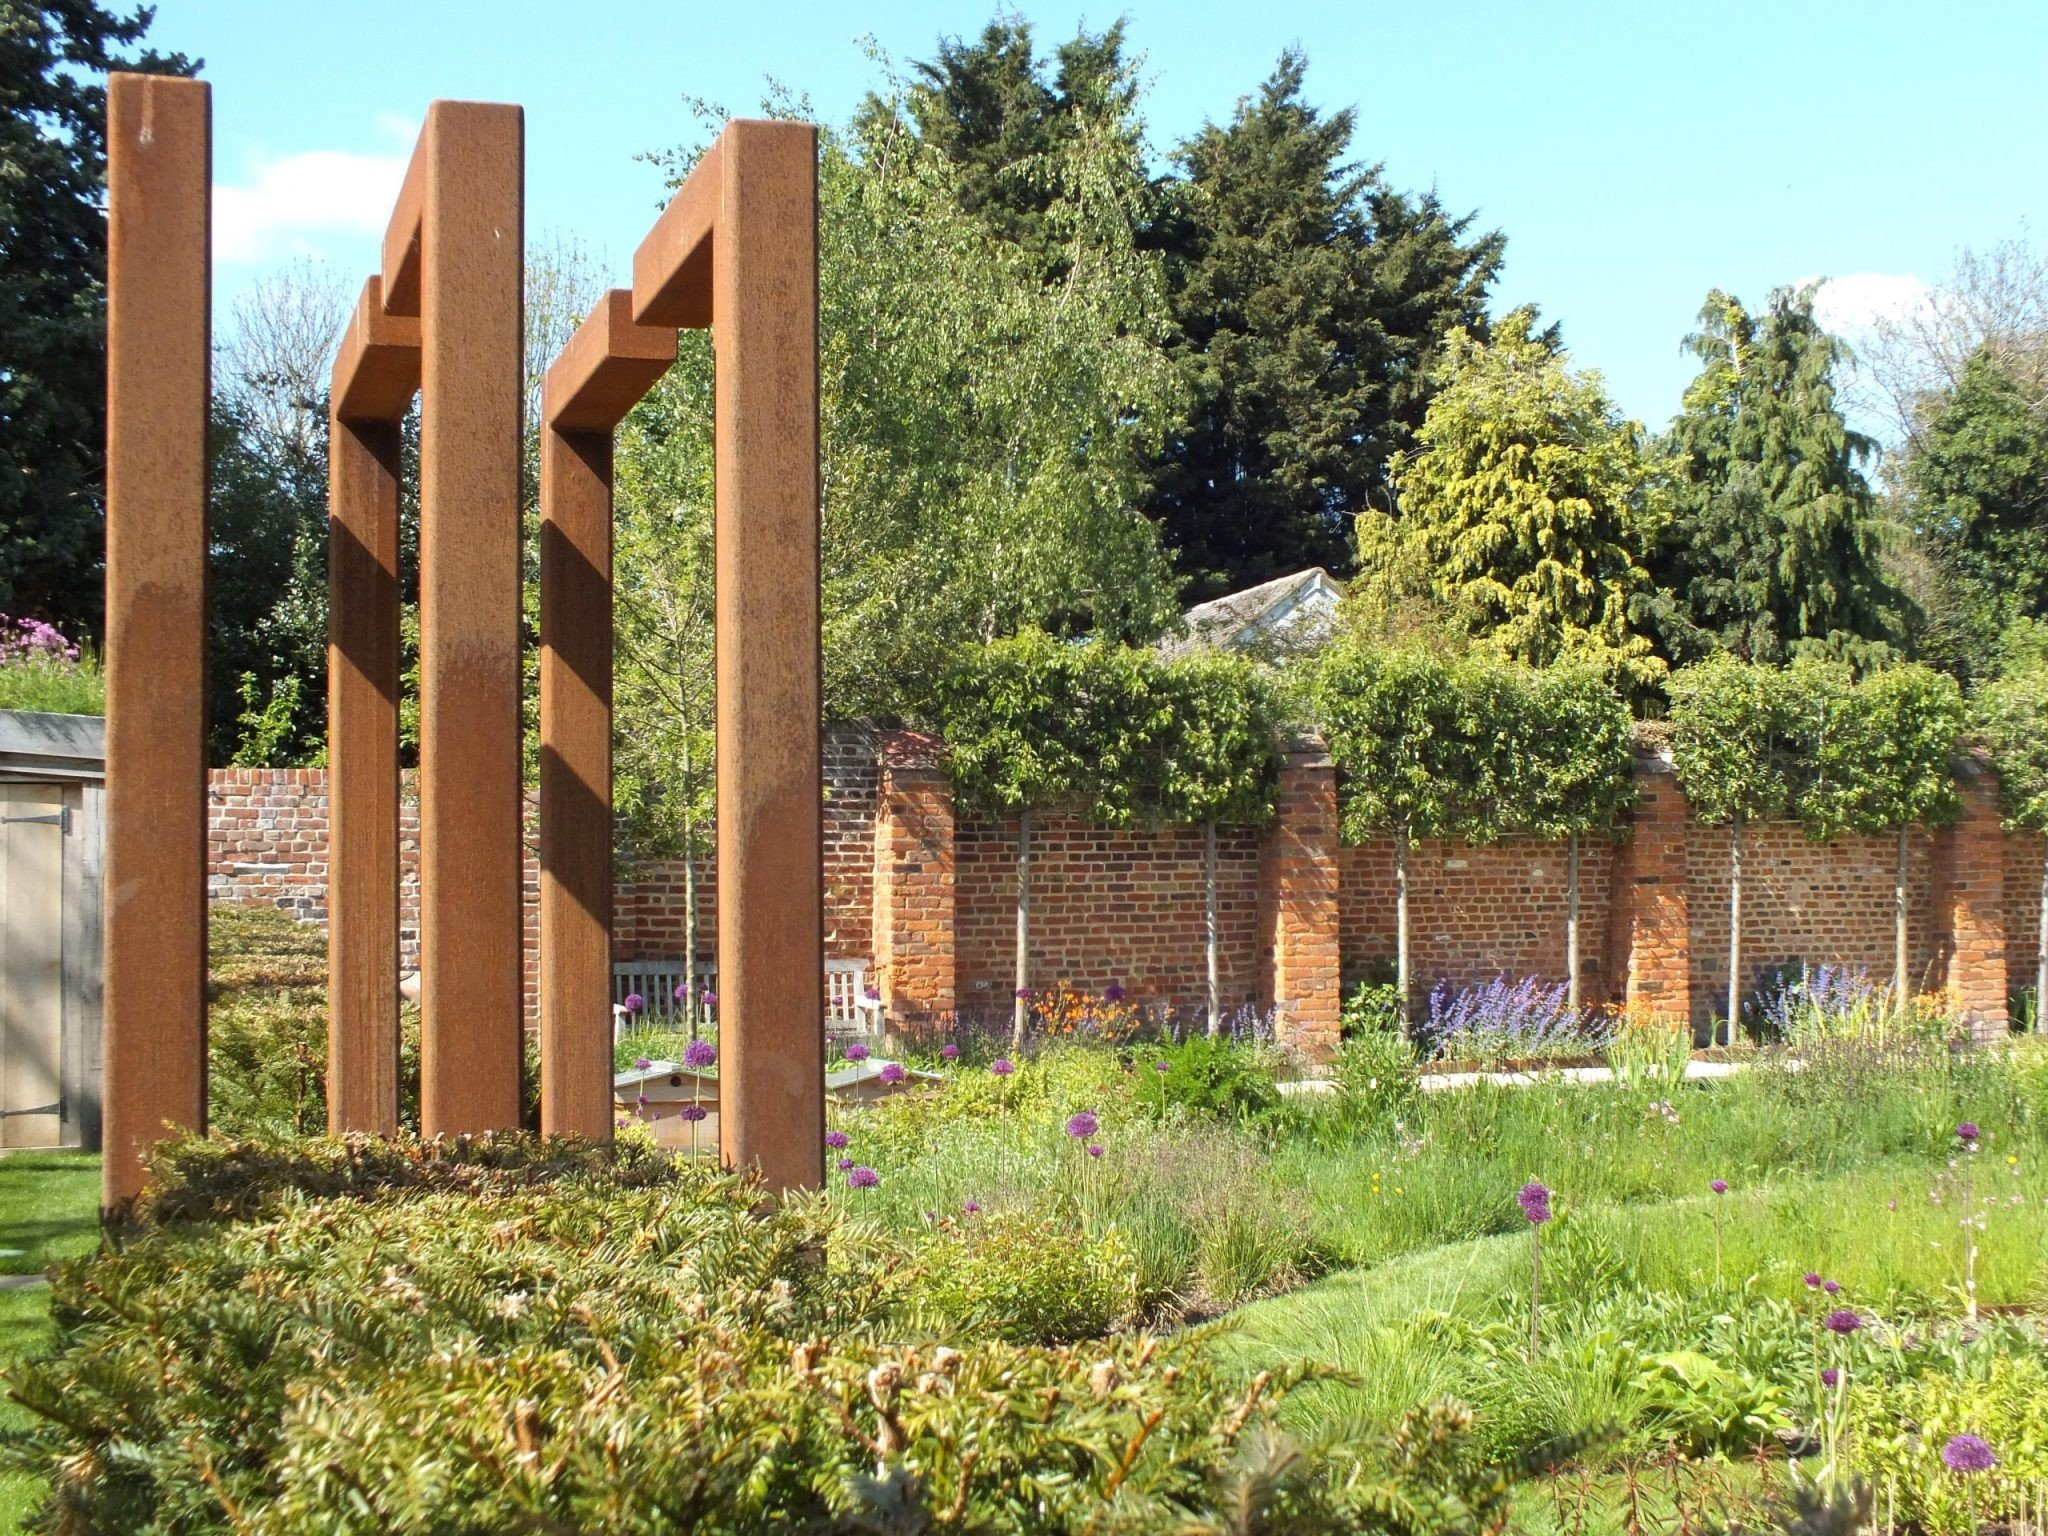 Row of posts - the walled garden